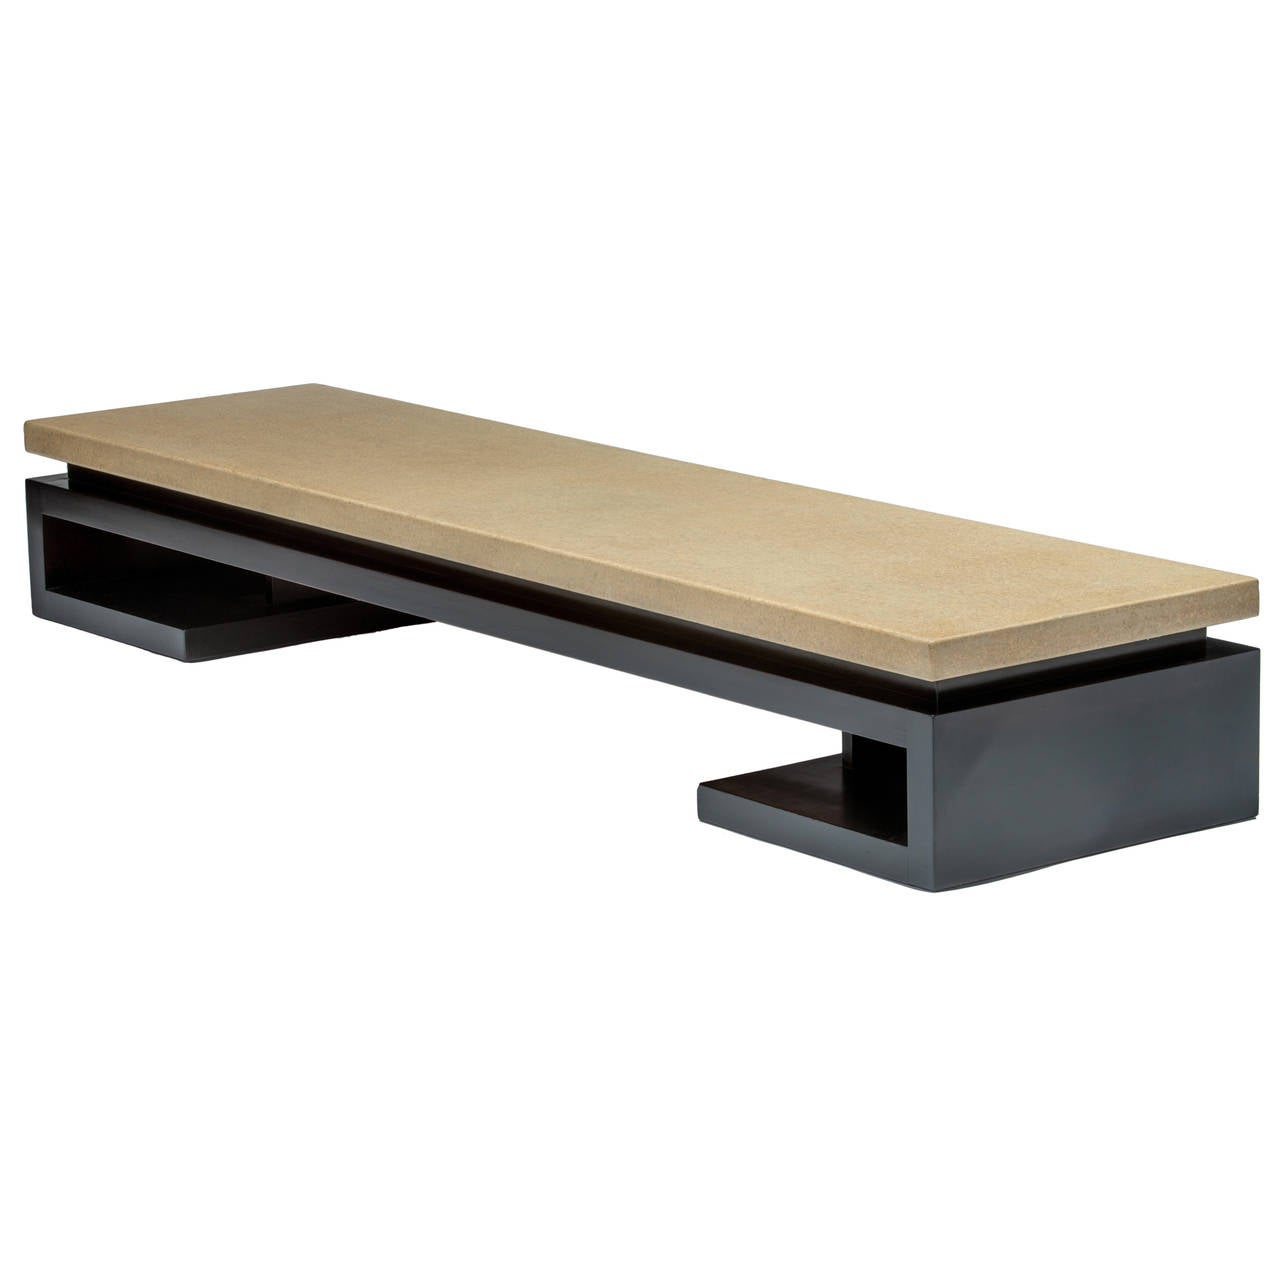 Paul frankl coffee table or bench at 1stdibs - Modern coffee table ...